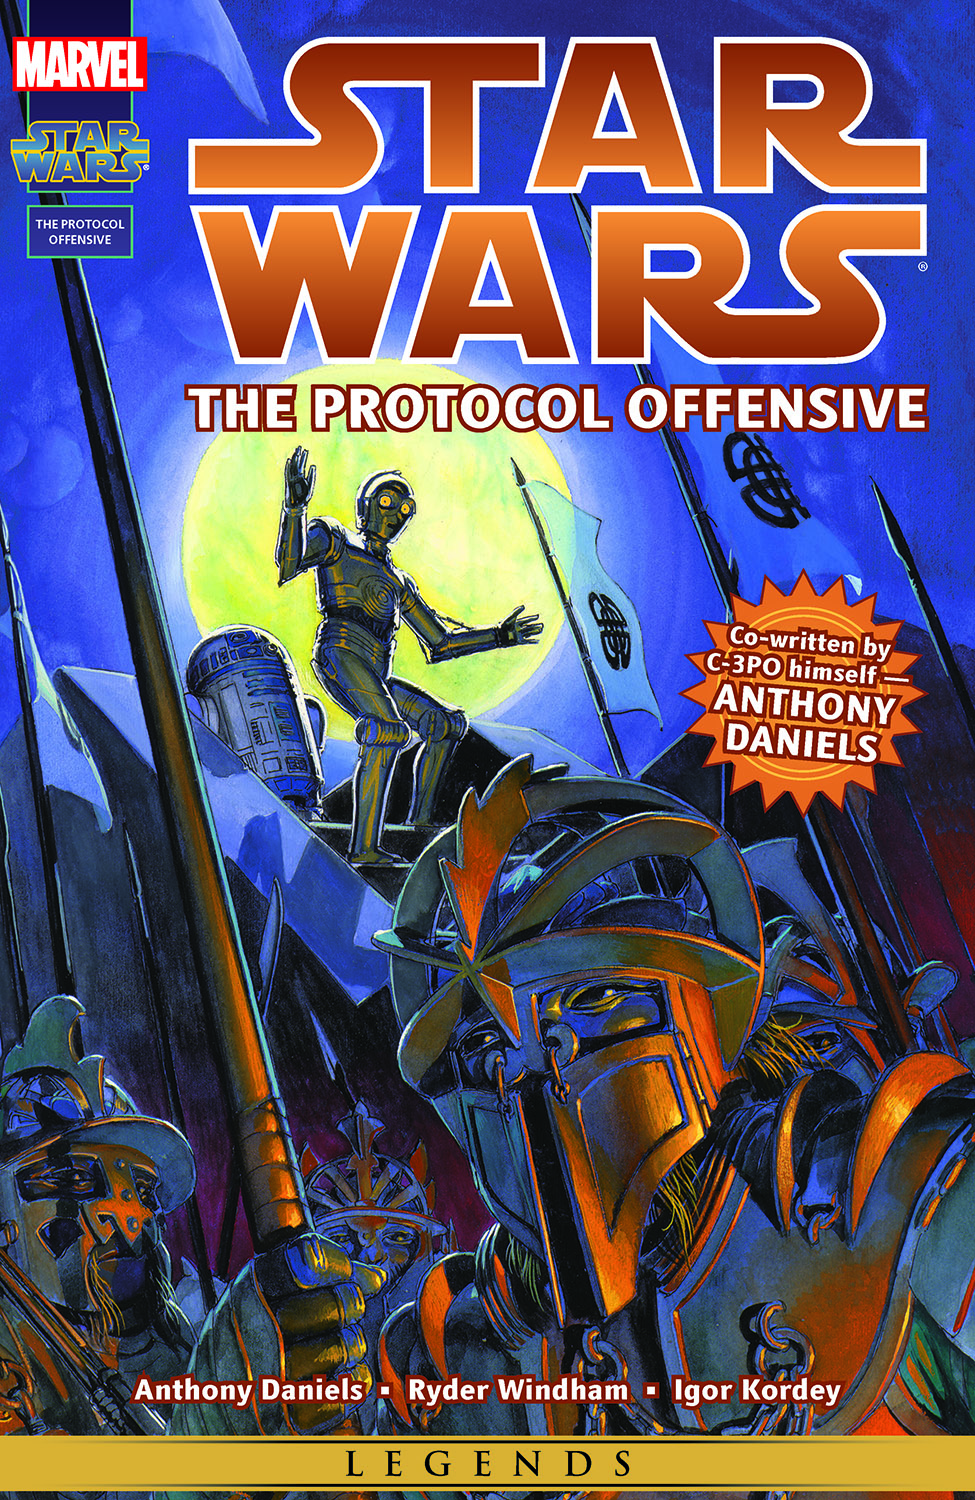 Star Wars: Droids - The Protocol Offensive (1997) #1